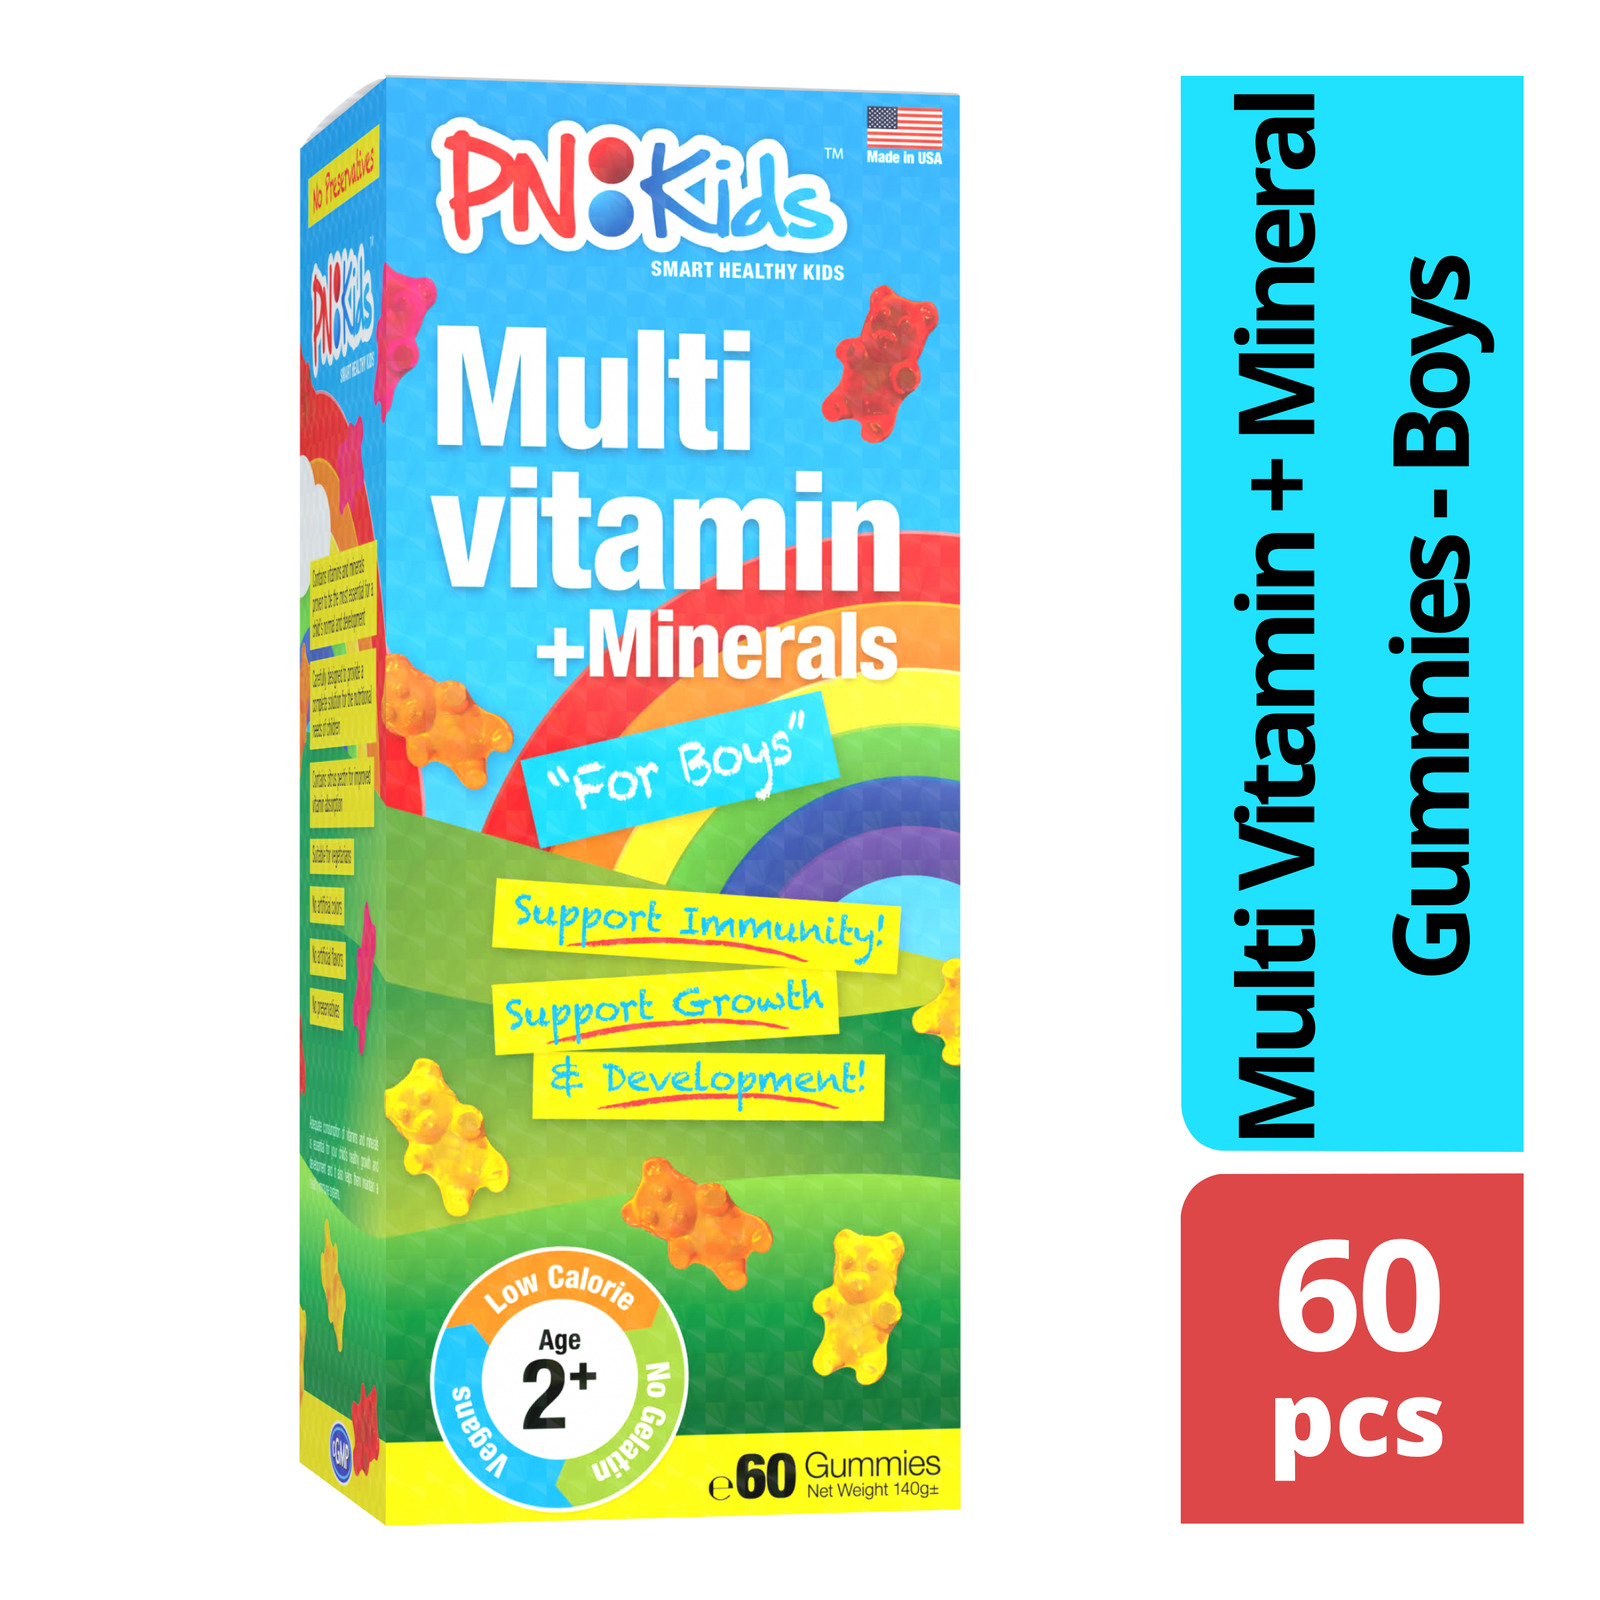 PNKids Multi Vitamin + Mineral Gummies - Boys